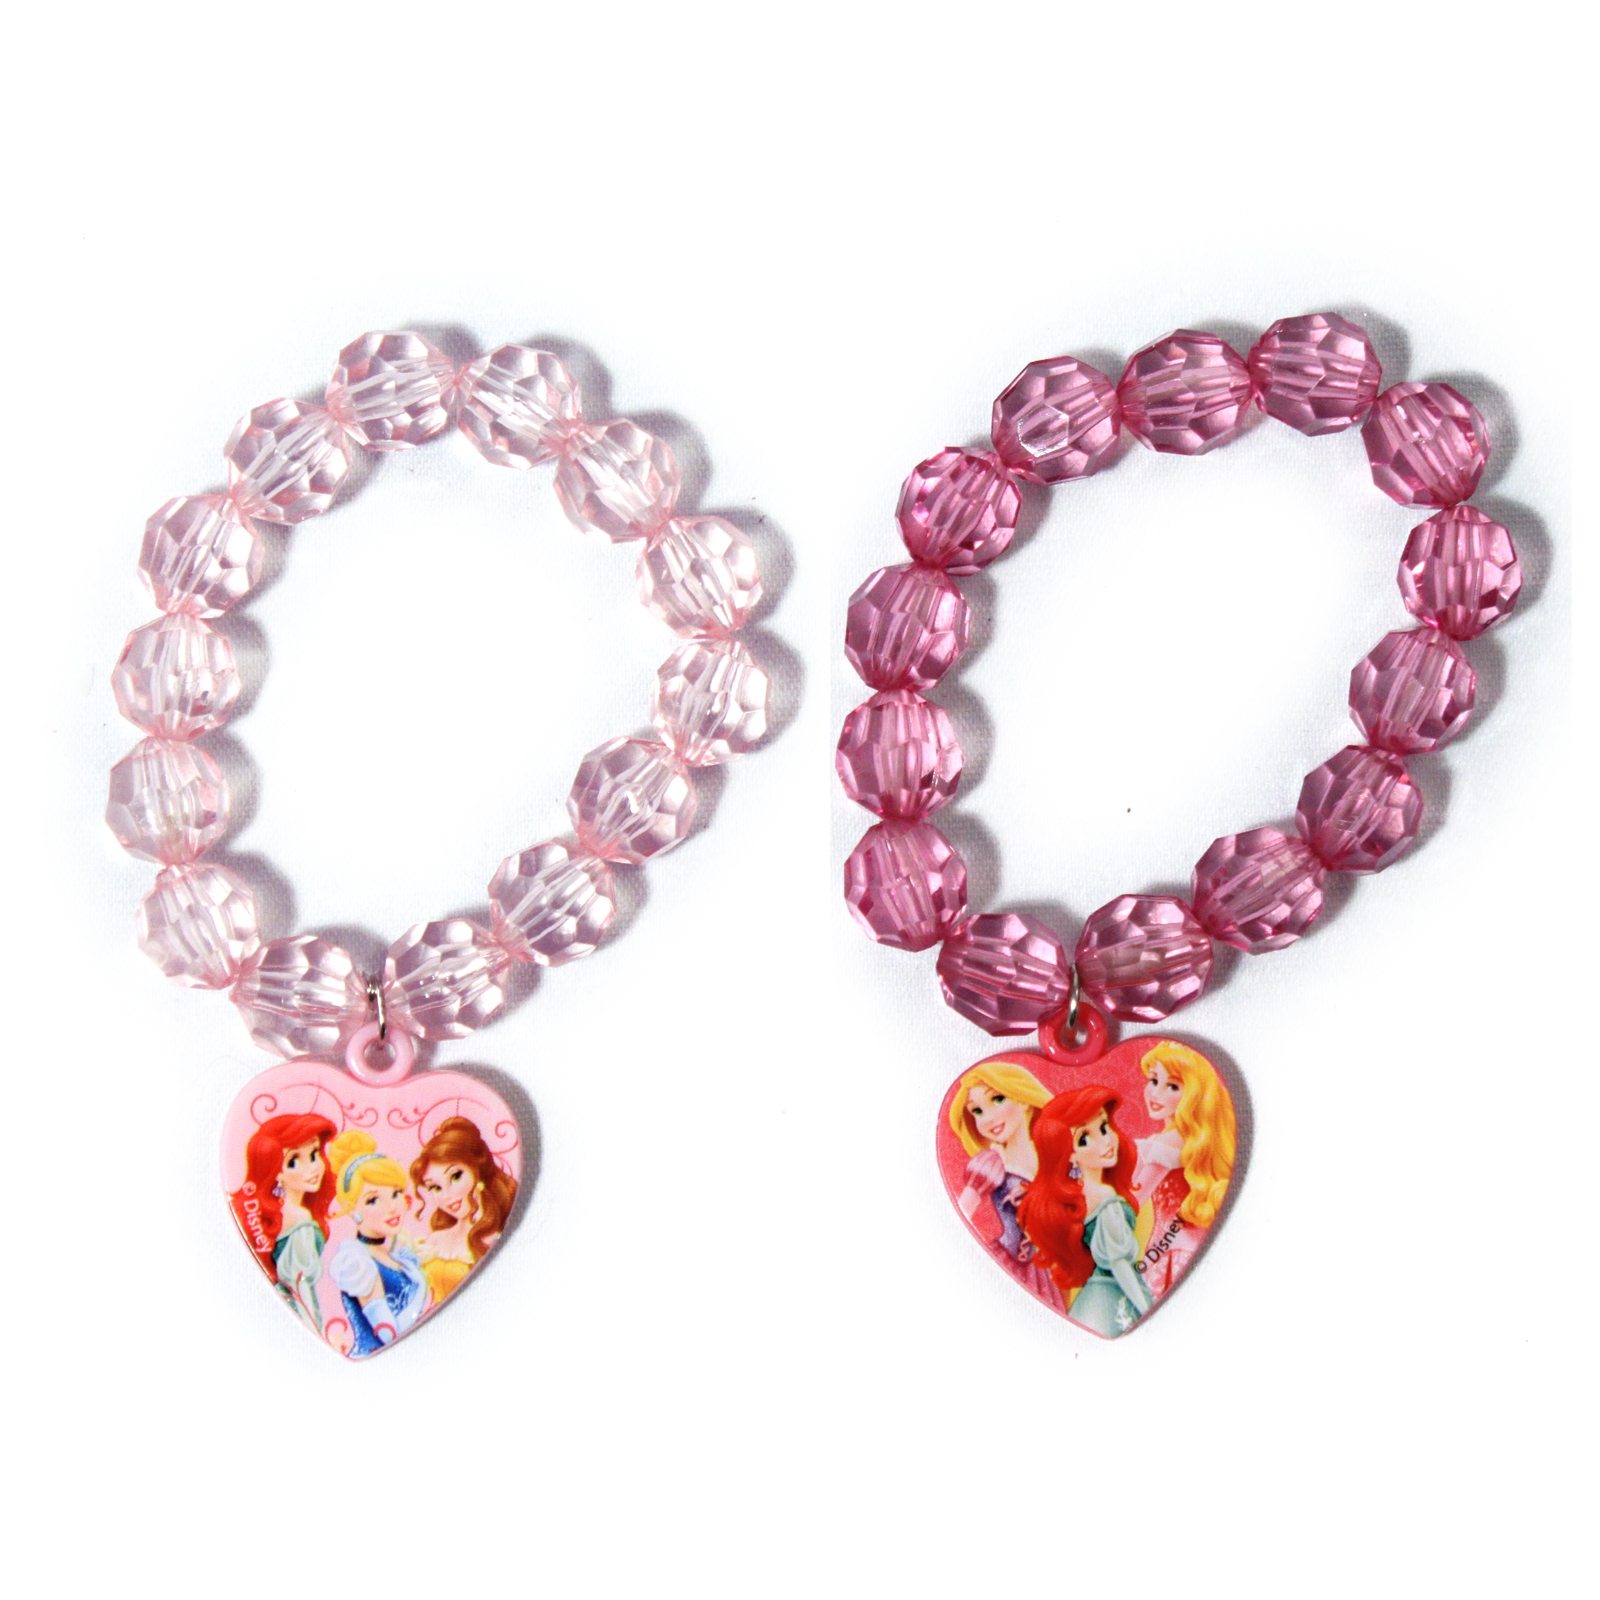 Disney Princess Girls Fashion Jewelry Bracelet (2 Pack) Pink & Purple